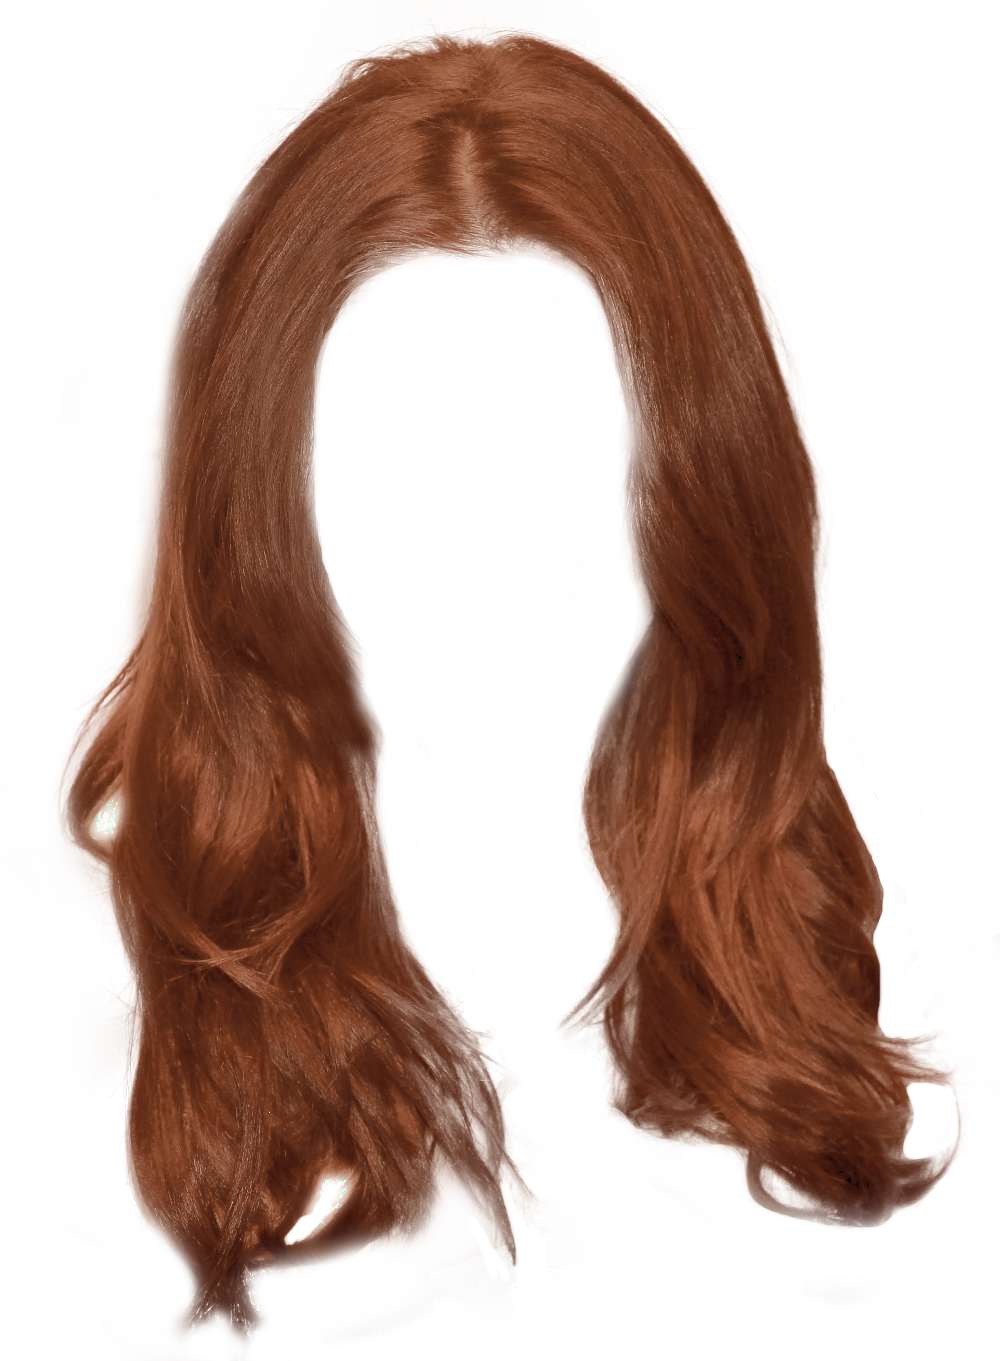 Hairstyle Png : Step2:Select Hair Styles